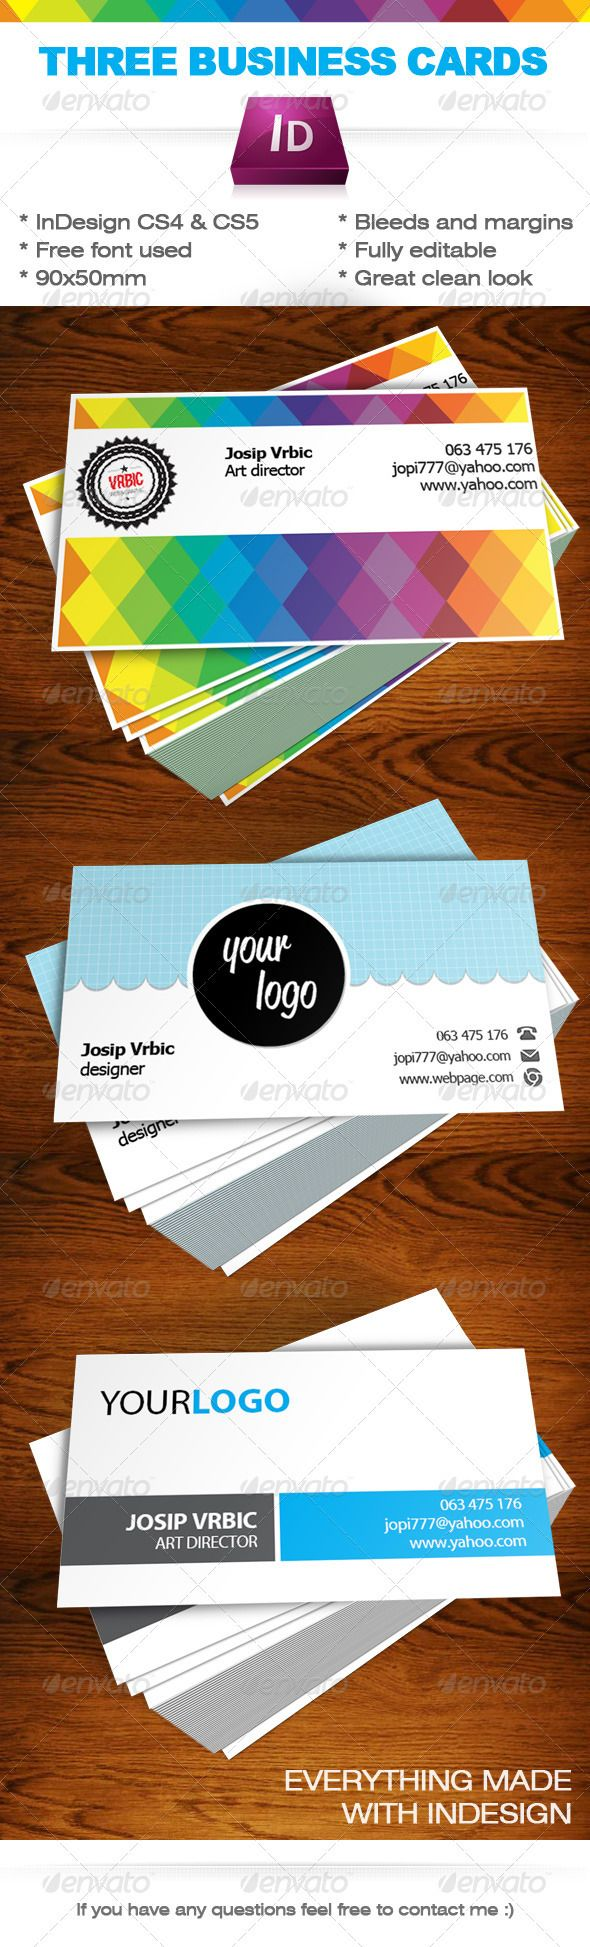 103 best Print Templates images on Pinterest | Print templates ...